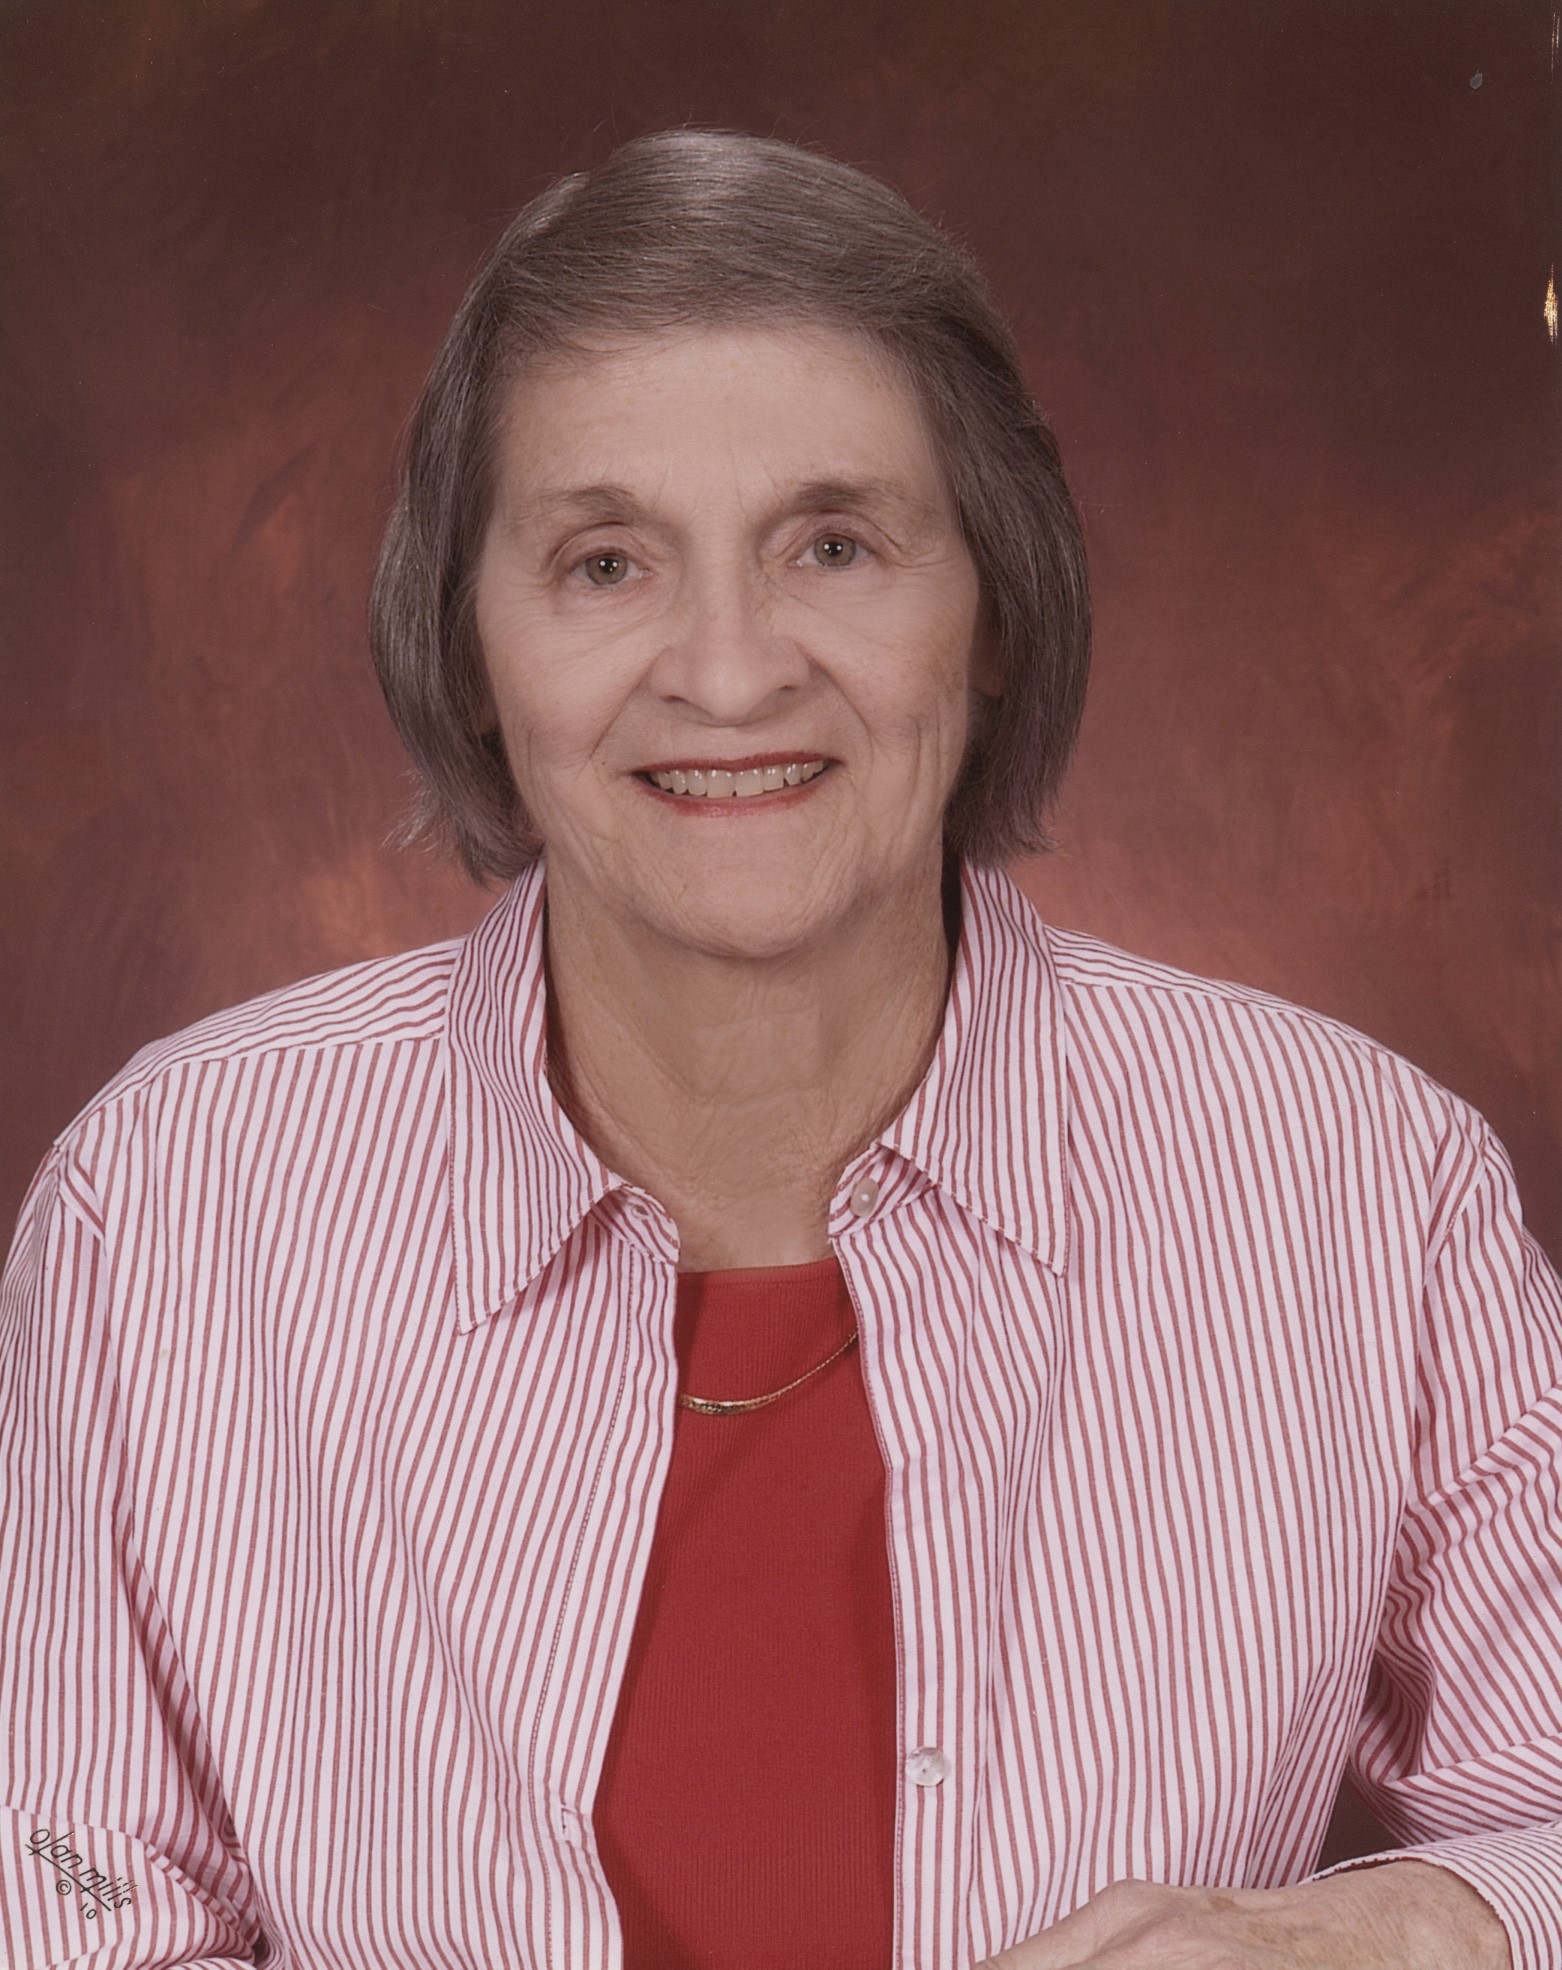 Martha J. Wollenmann, age 85, of Huntingburg